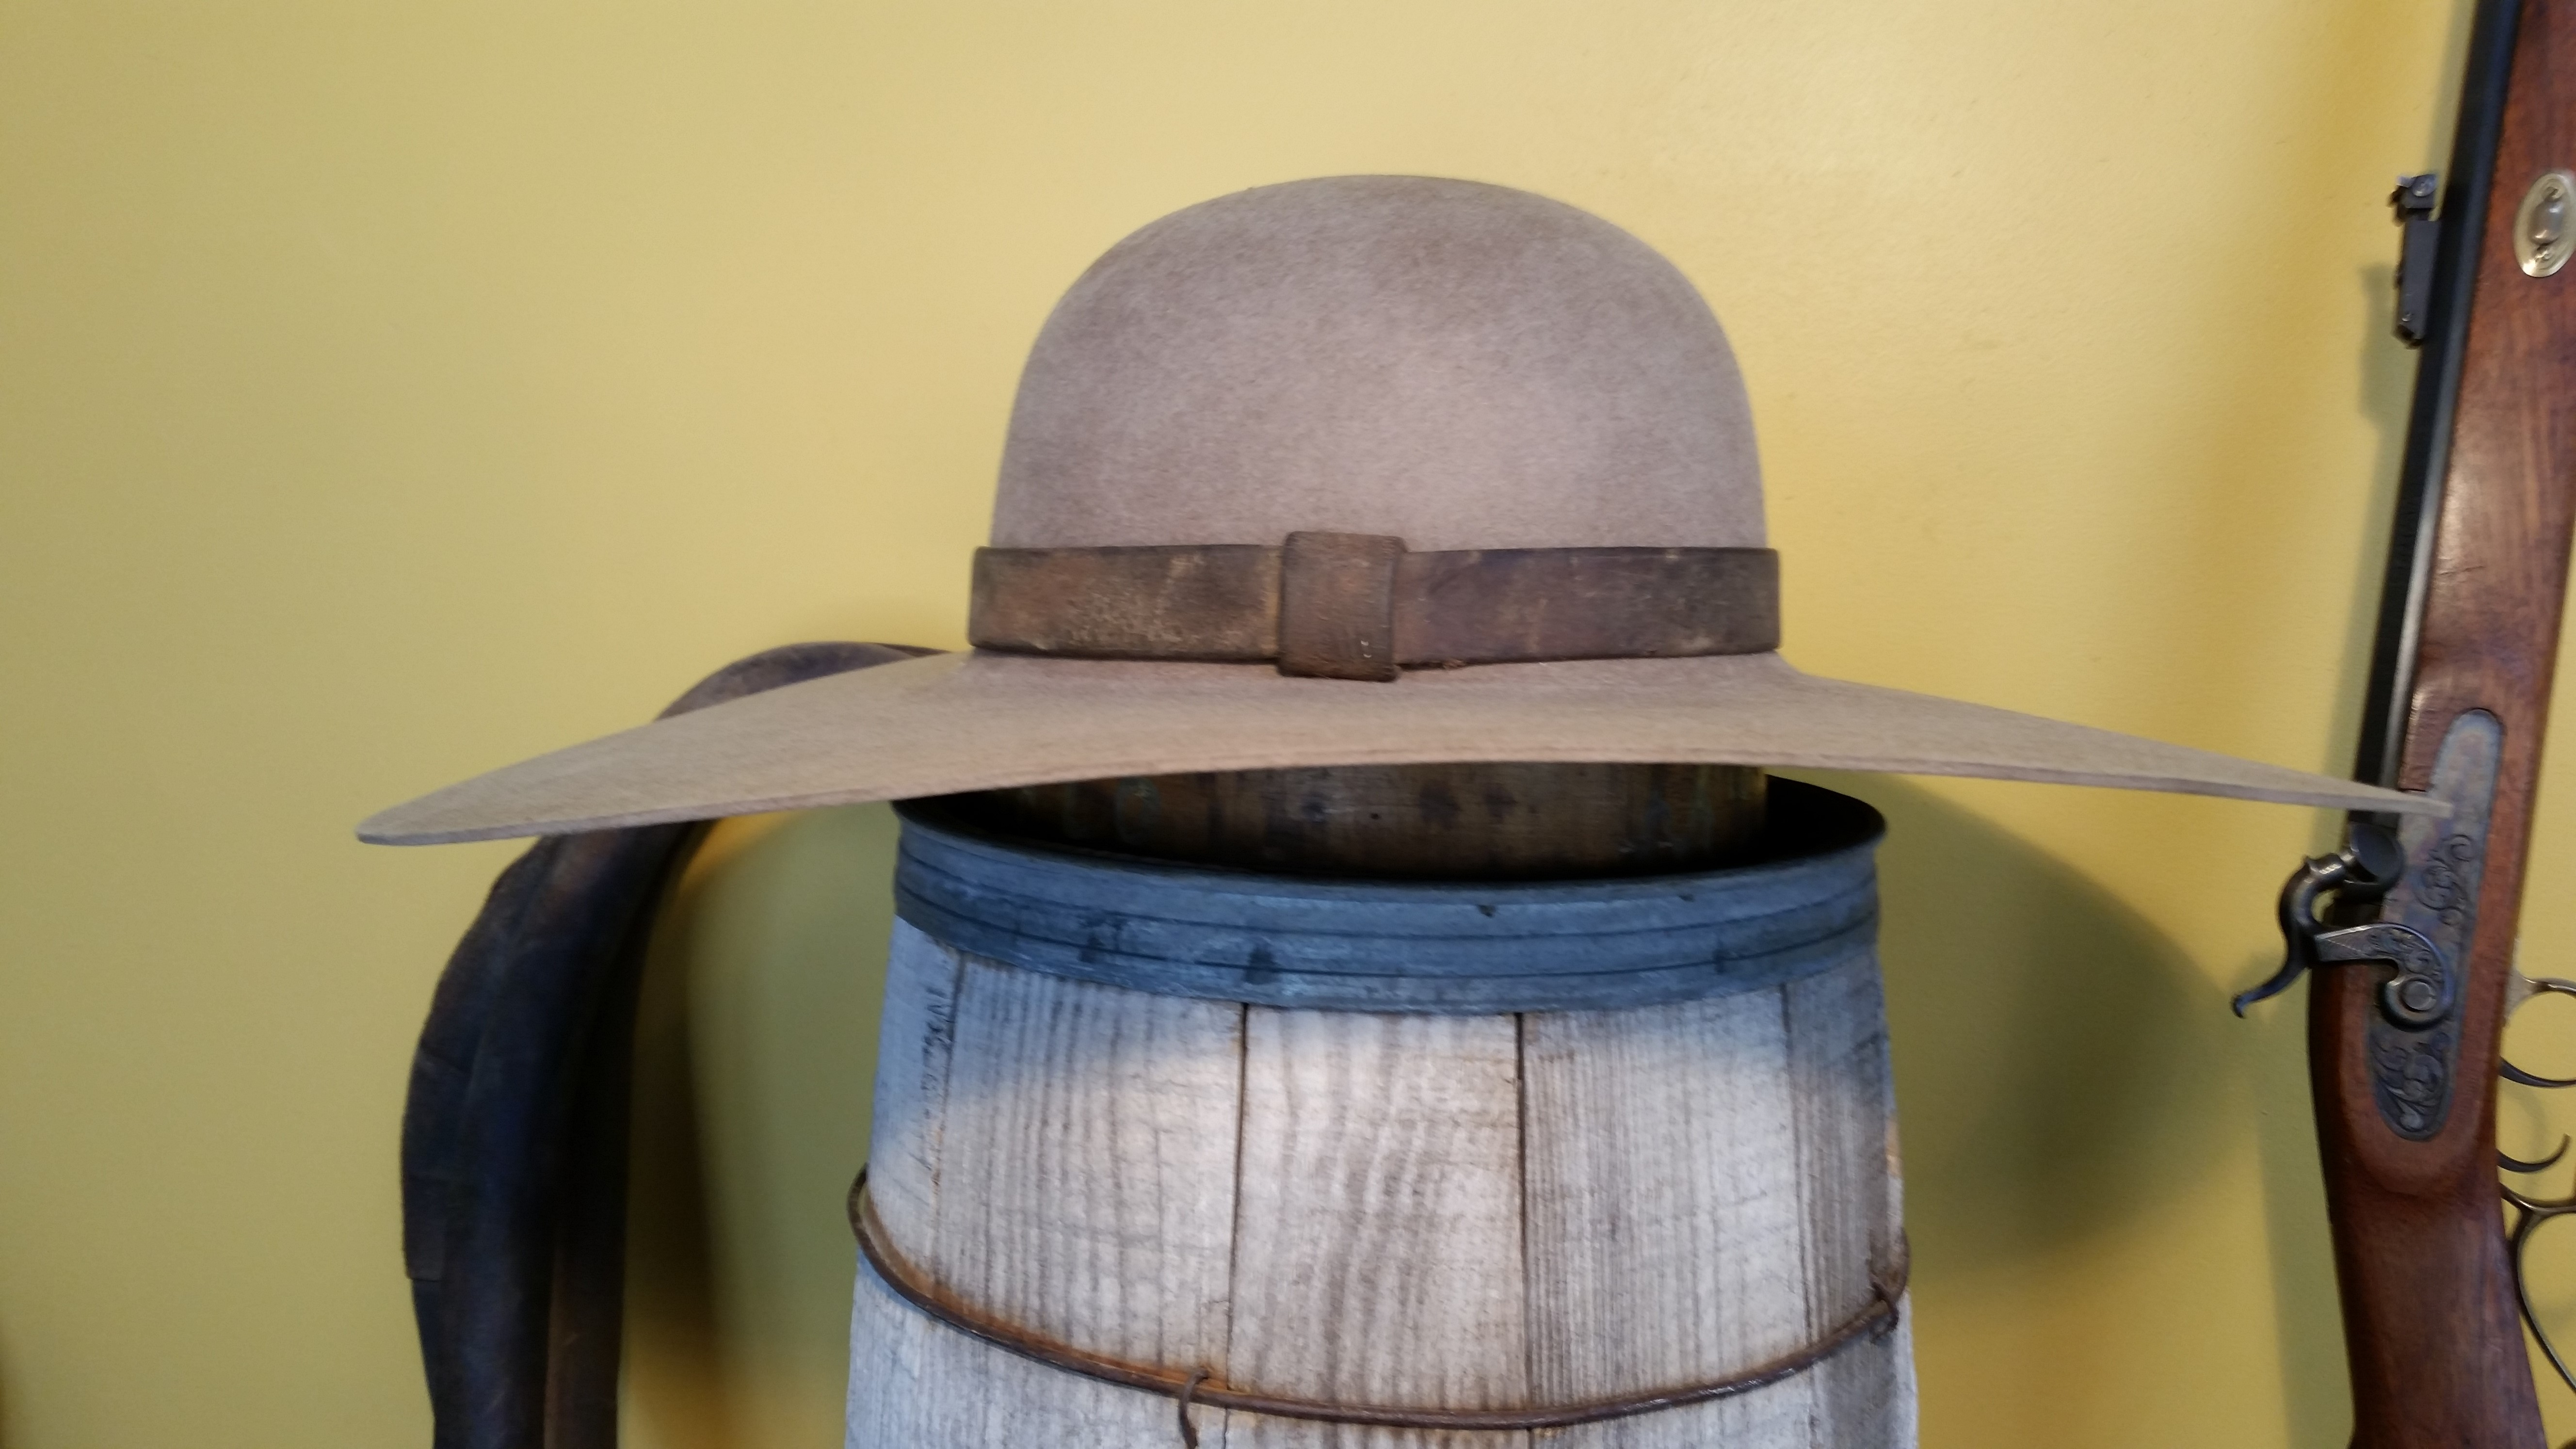 Old Vintage looking Cowboy Hats - Staker Hats d131c42391bd